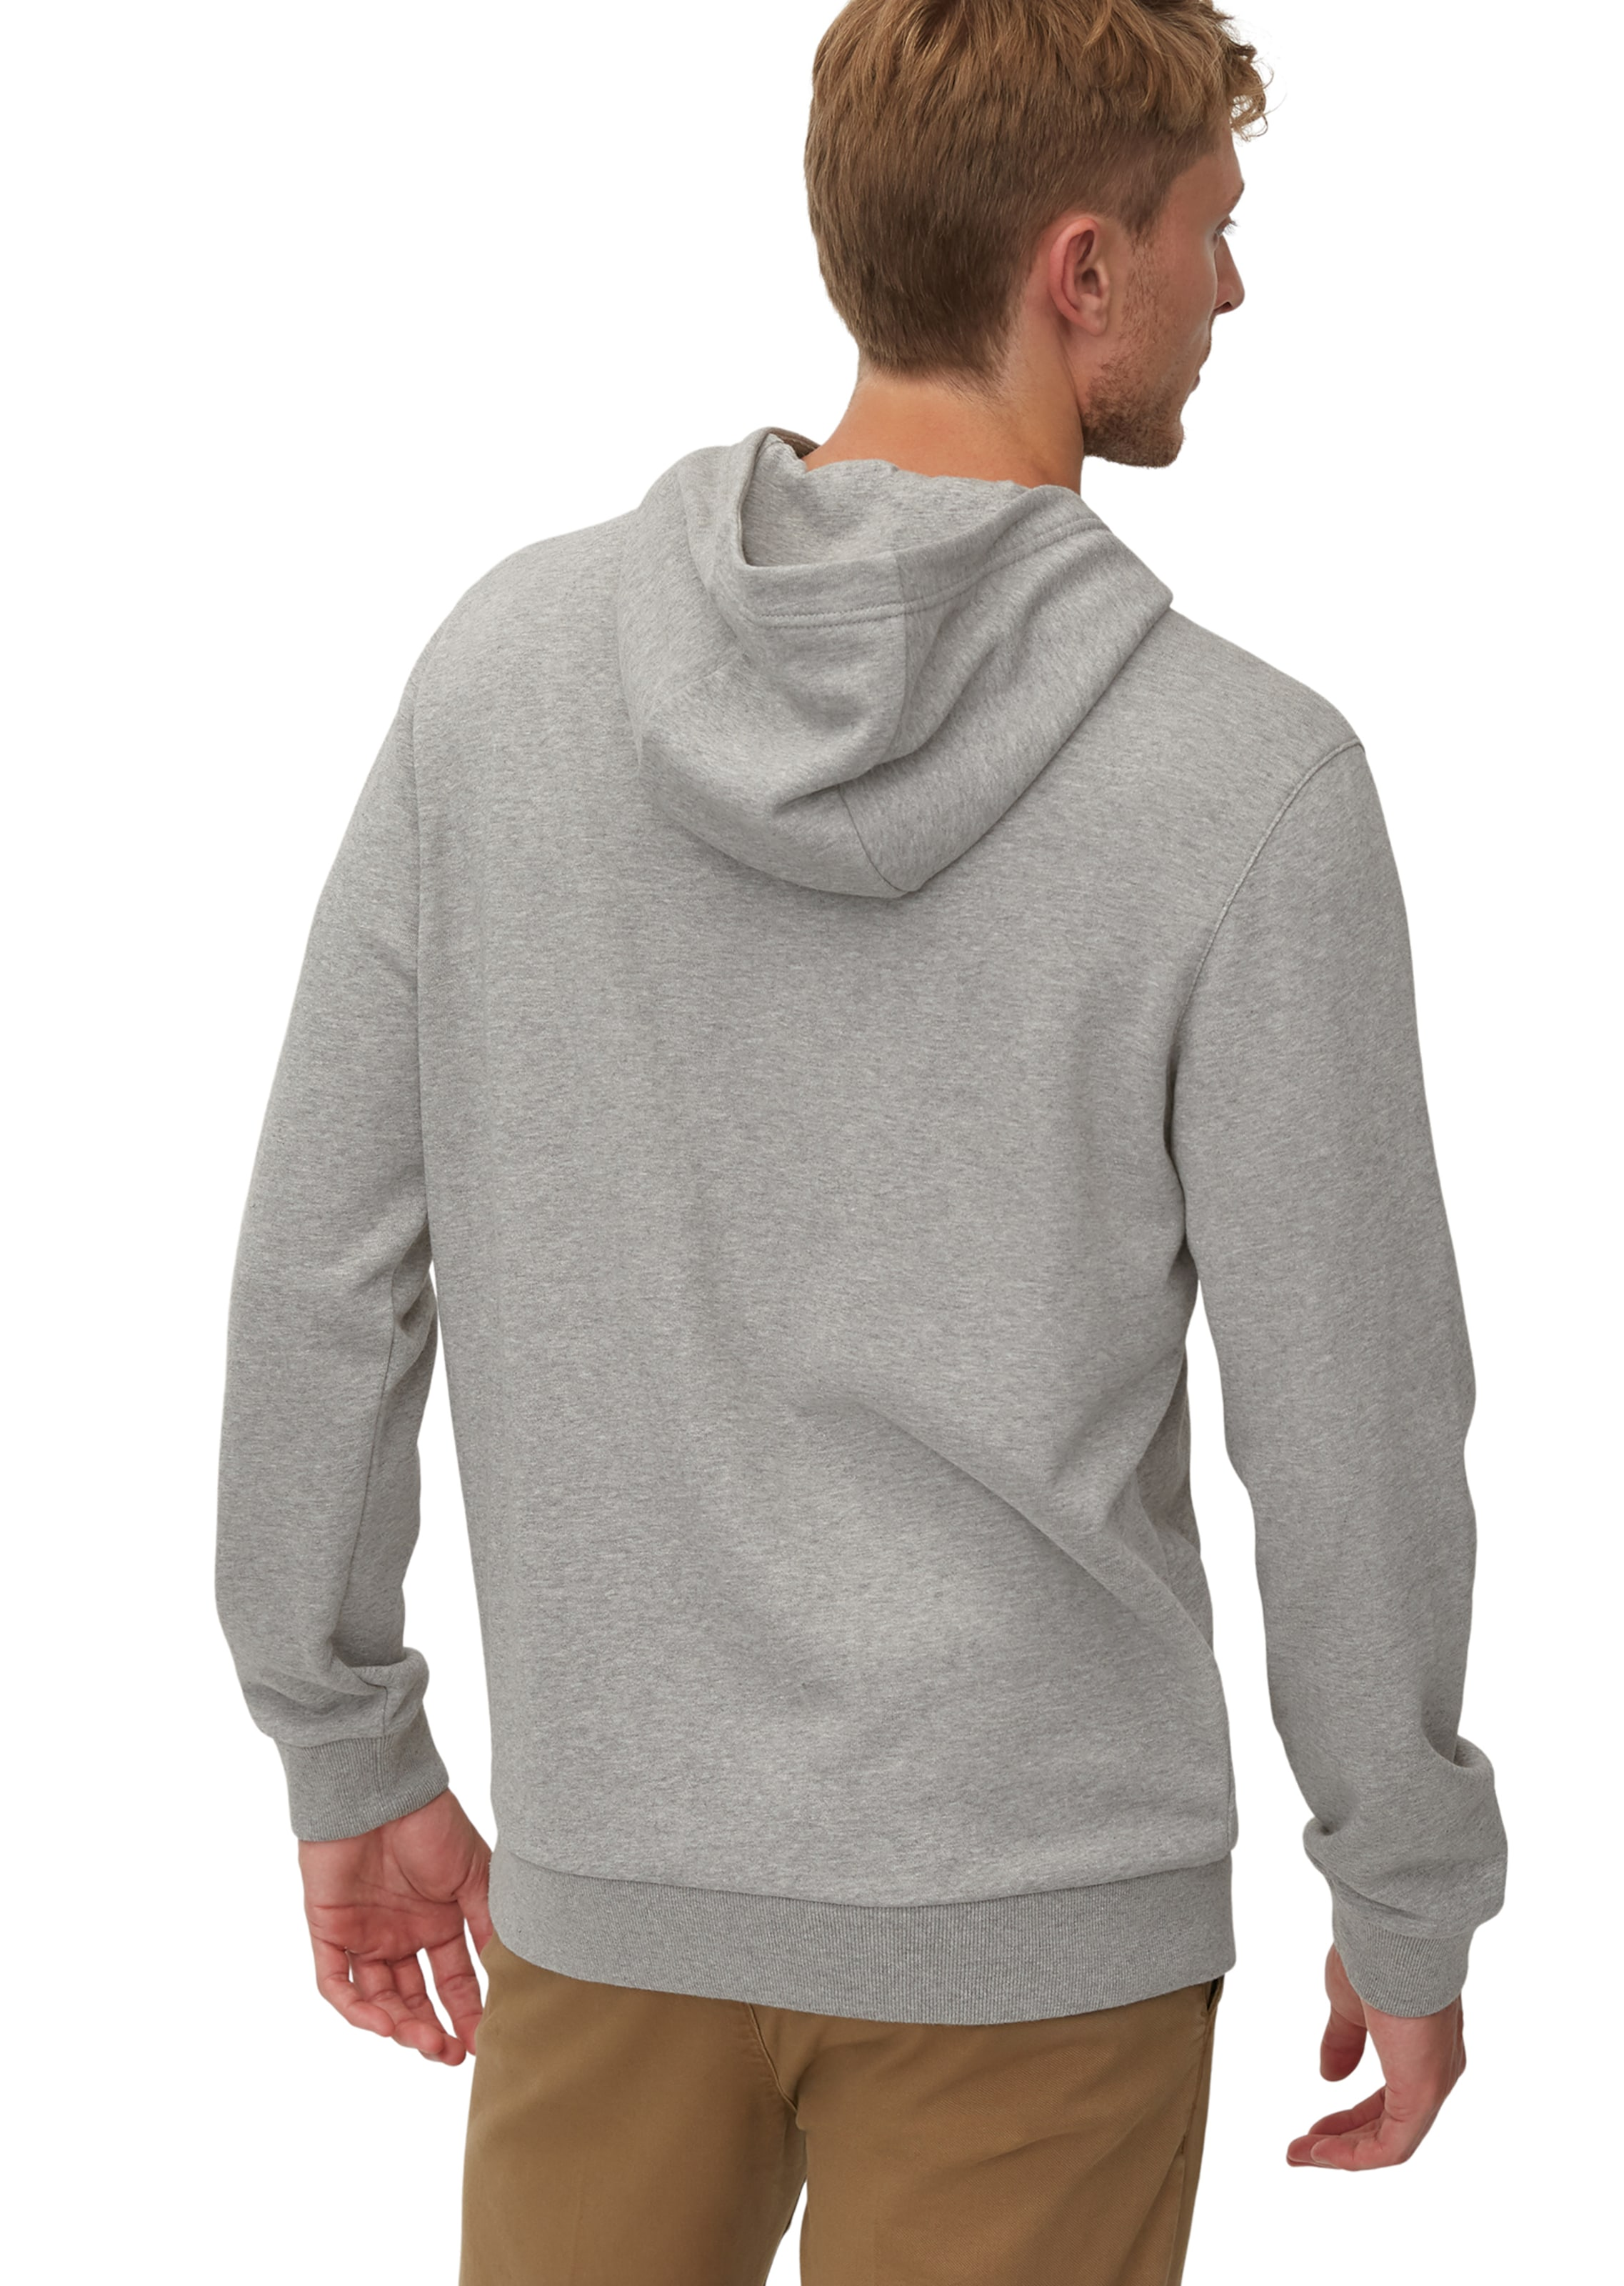 Marc O'polo Hoodie In Graumeliert In Graumeliert O'polo Hoodie Marc EI29DH